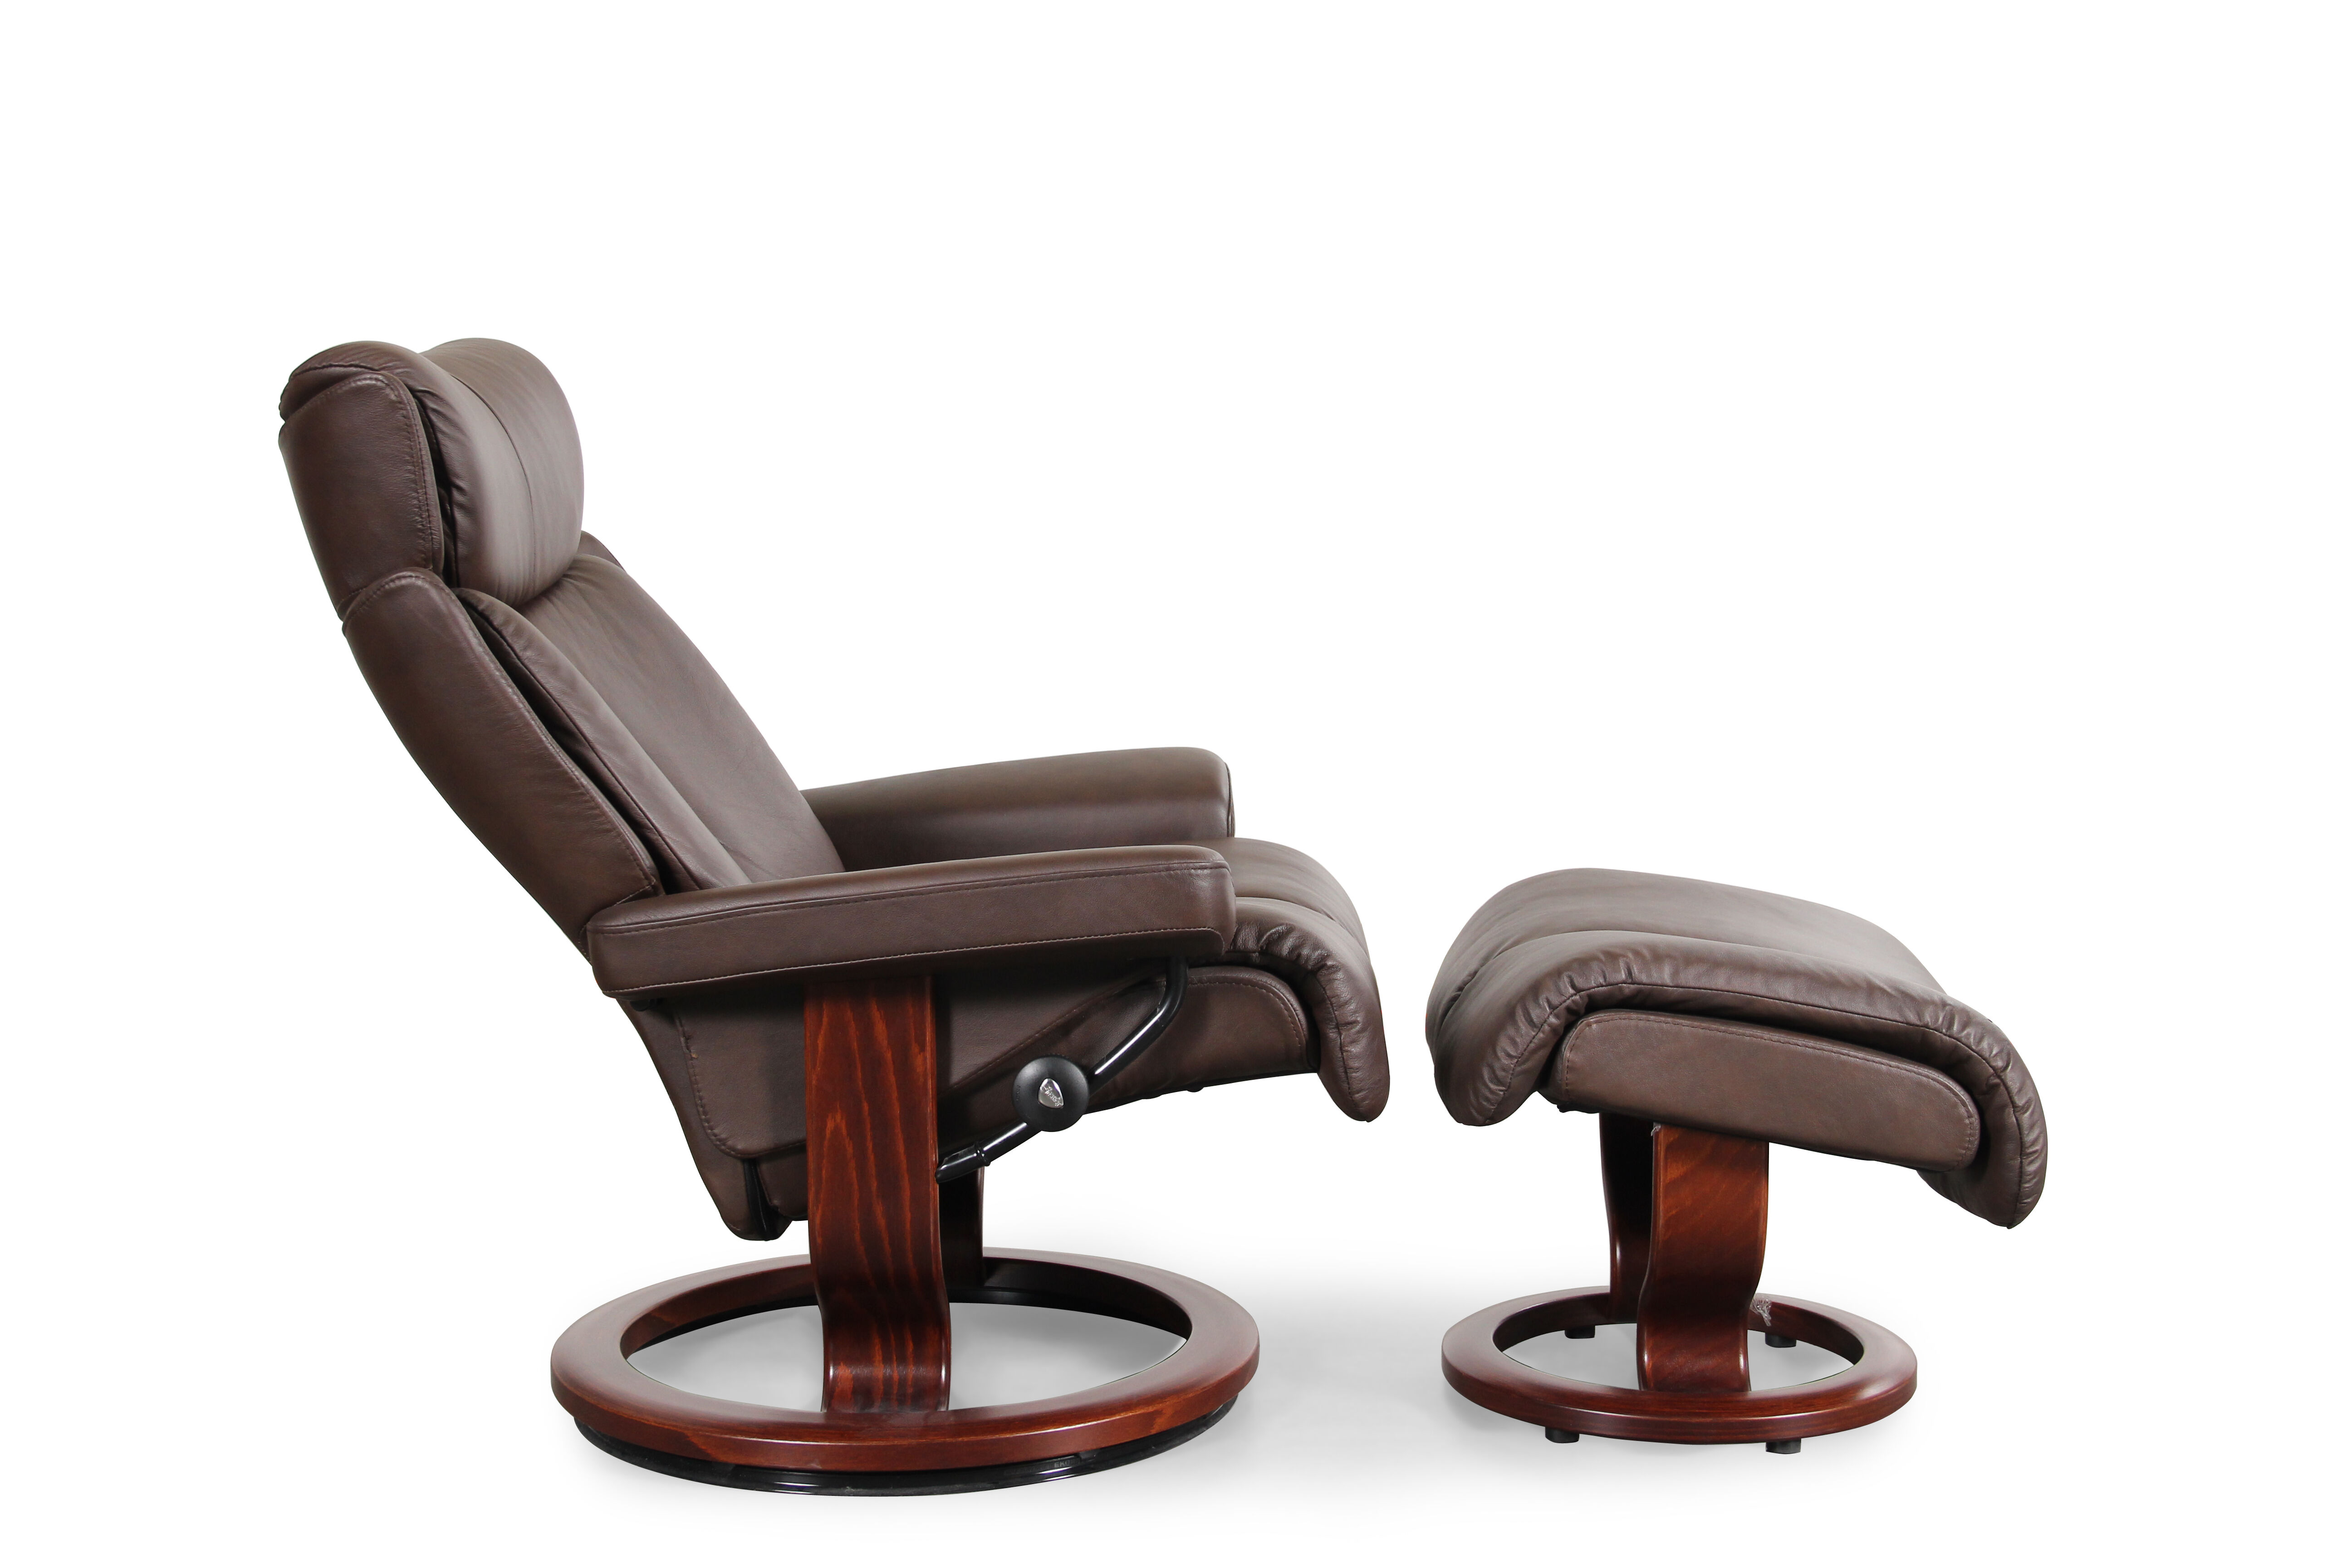 Contemporary Swivel Chairs Contemporary Medium Swivel Chair And Ottoman In Chocolate